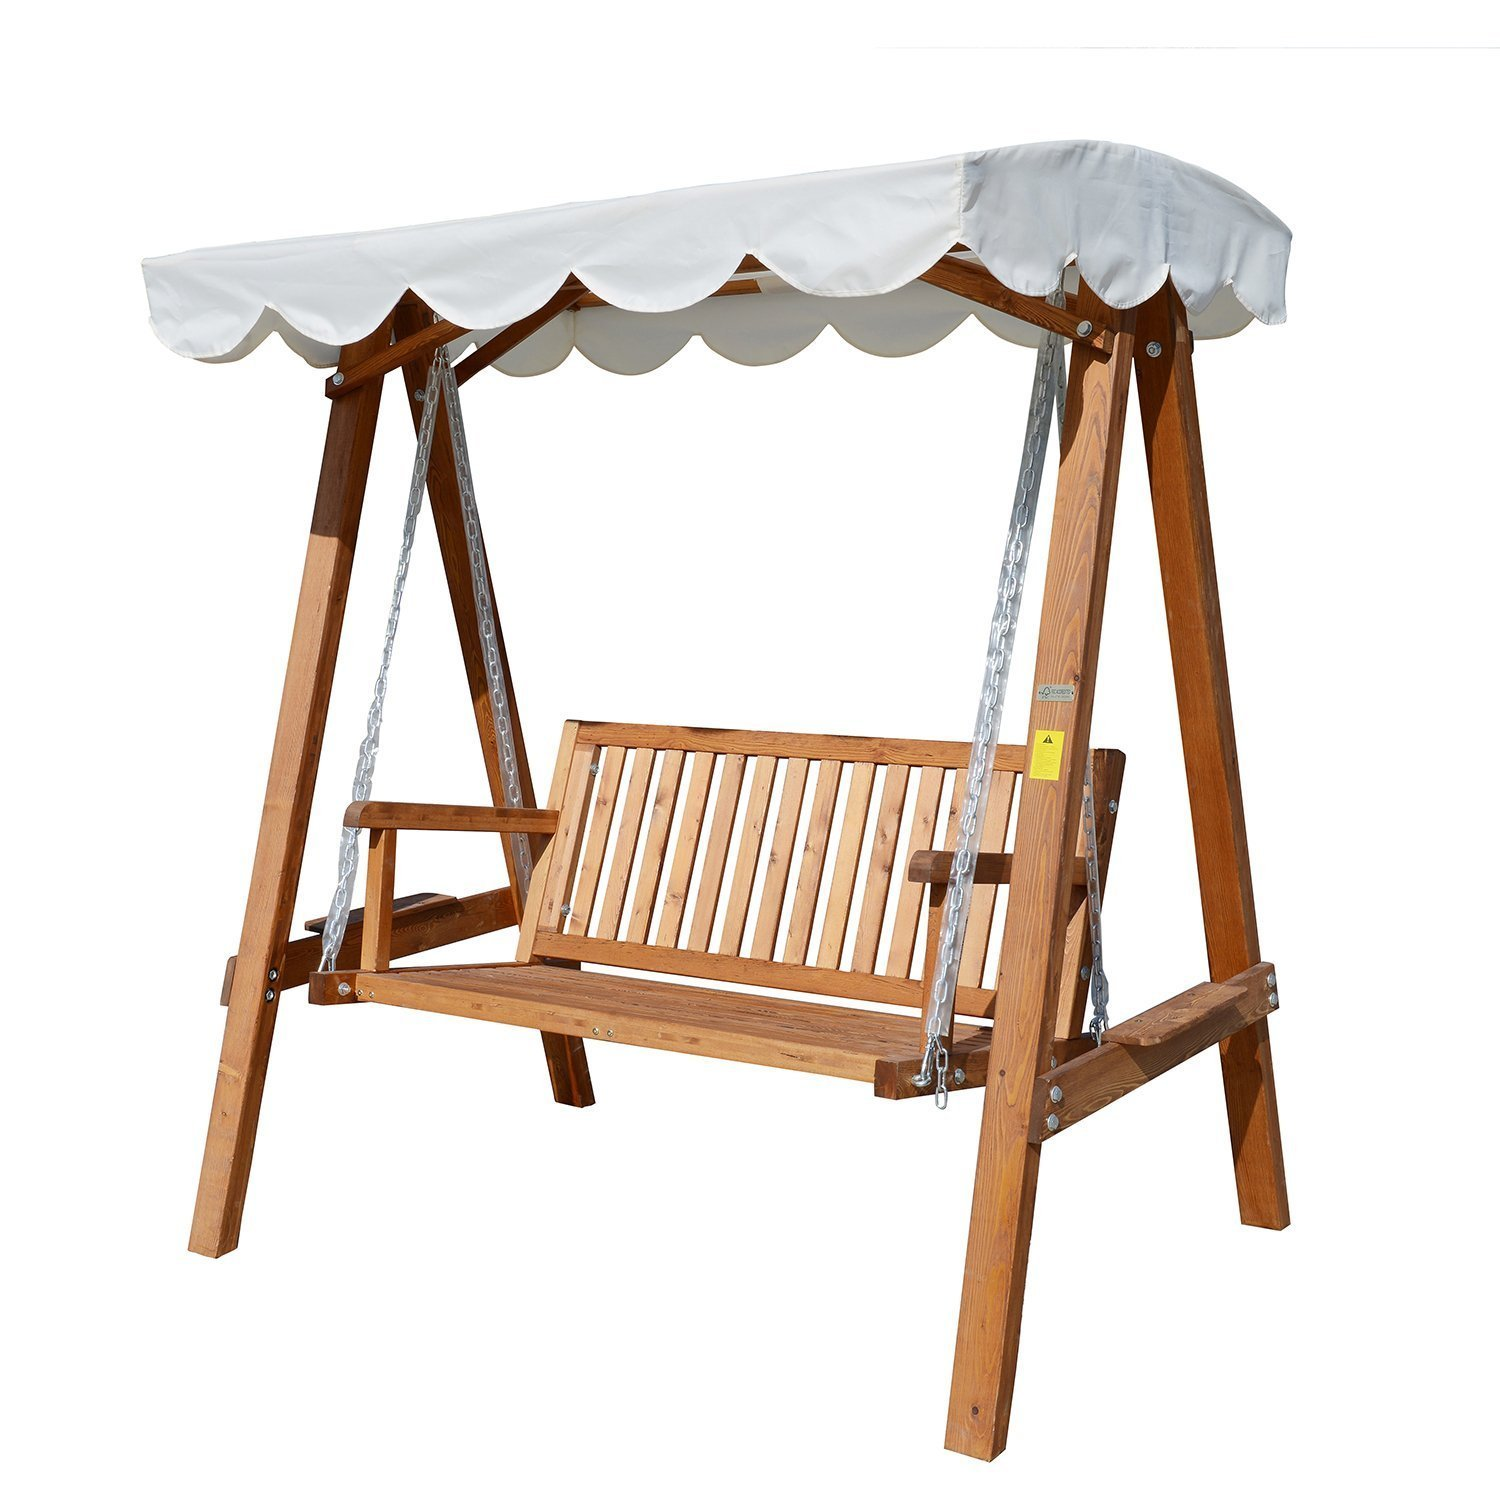 Outsunny Swing Pine Wood Frame With Sunshield Sun Shade Garden 162x125x185 Cm